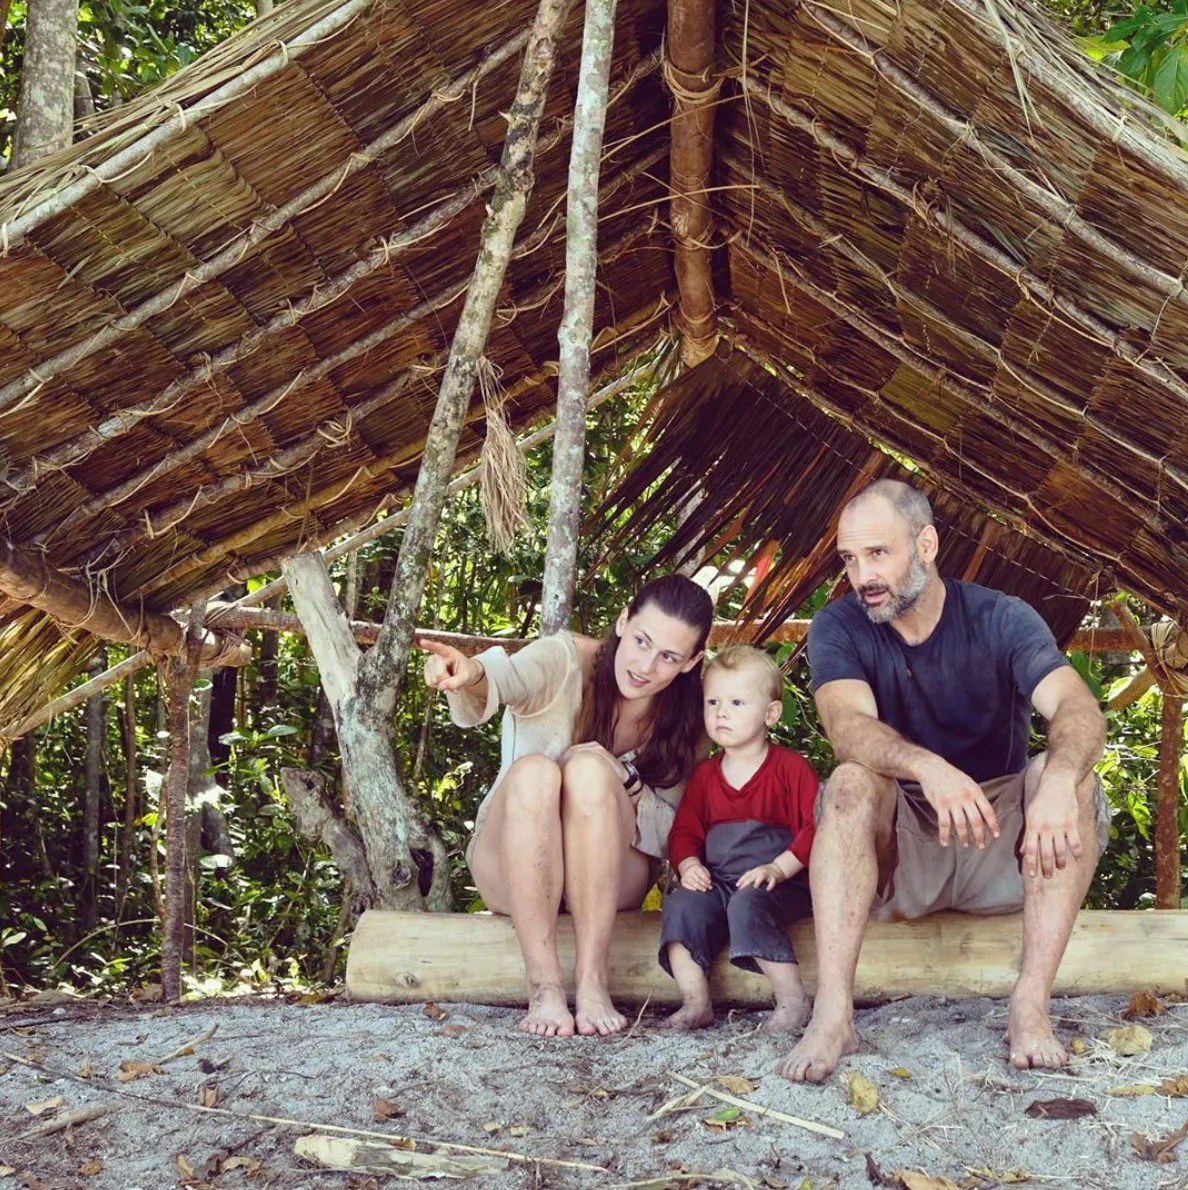 Adventurers Ed Stafford and Laura Bingham with their son Ran in their beach shelter on a remote Indonesian Island filming Man Woman Child Wild for Discovery